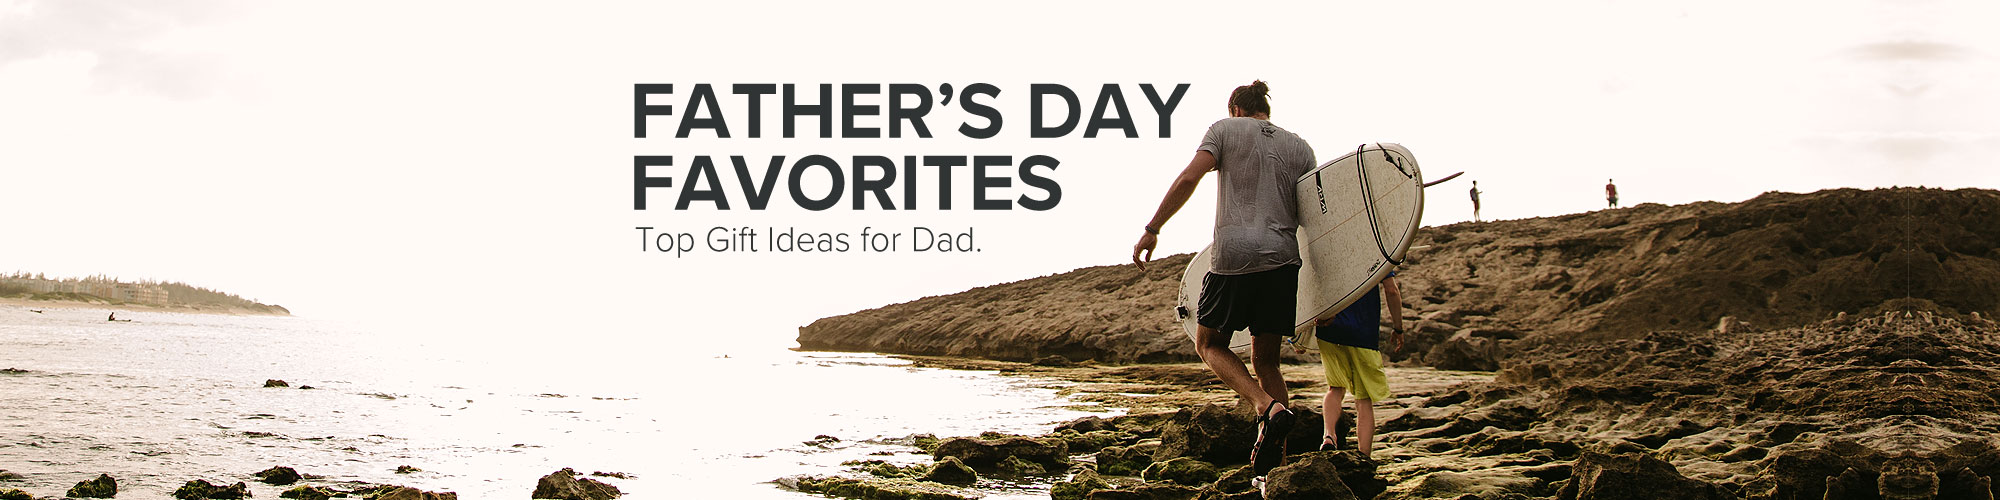 Father's Day Favorites - Top Gift Ideas for Dad.